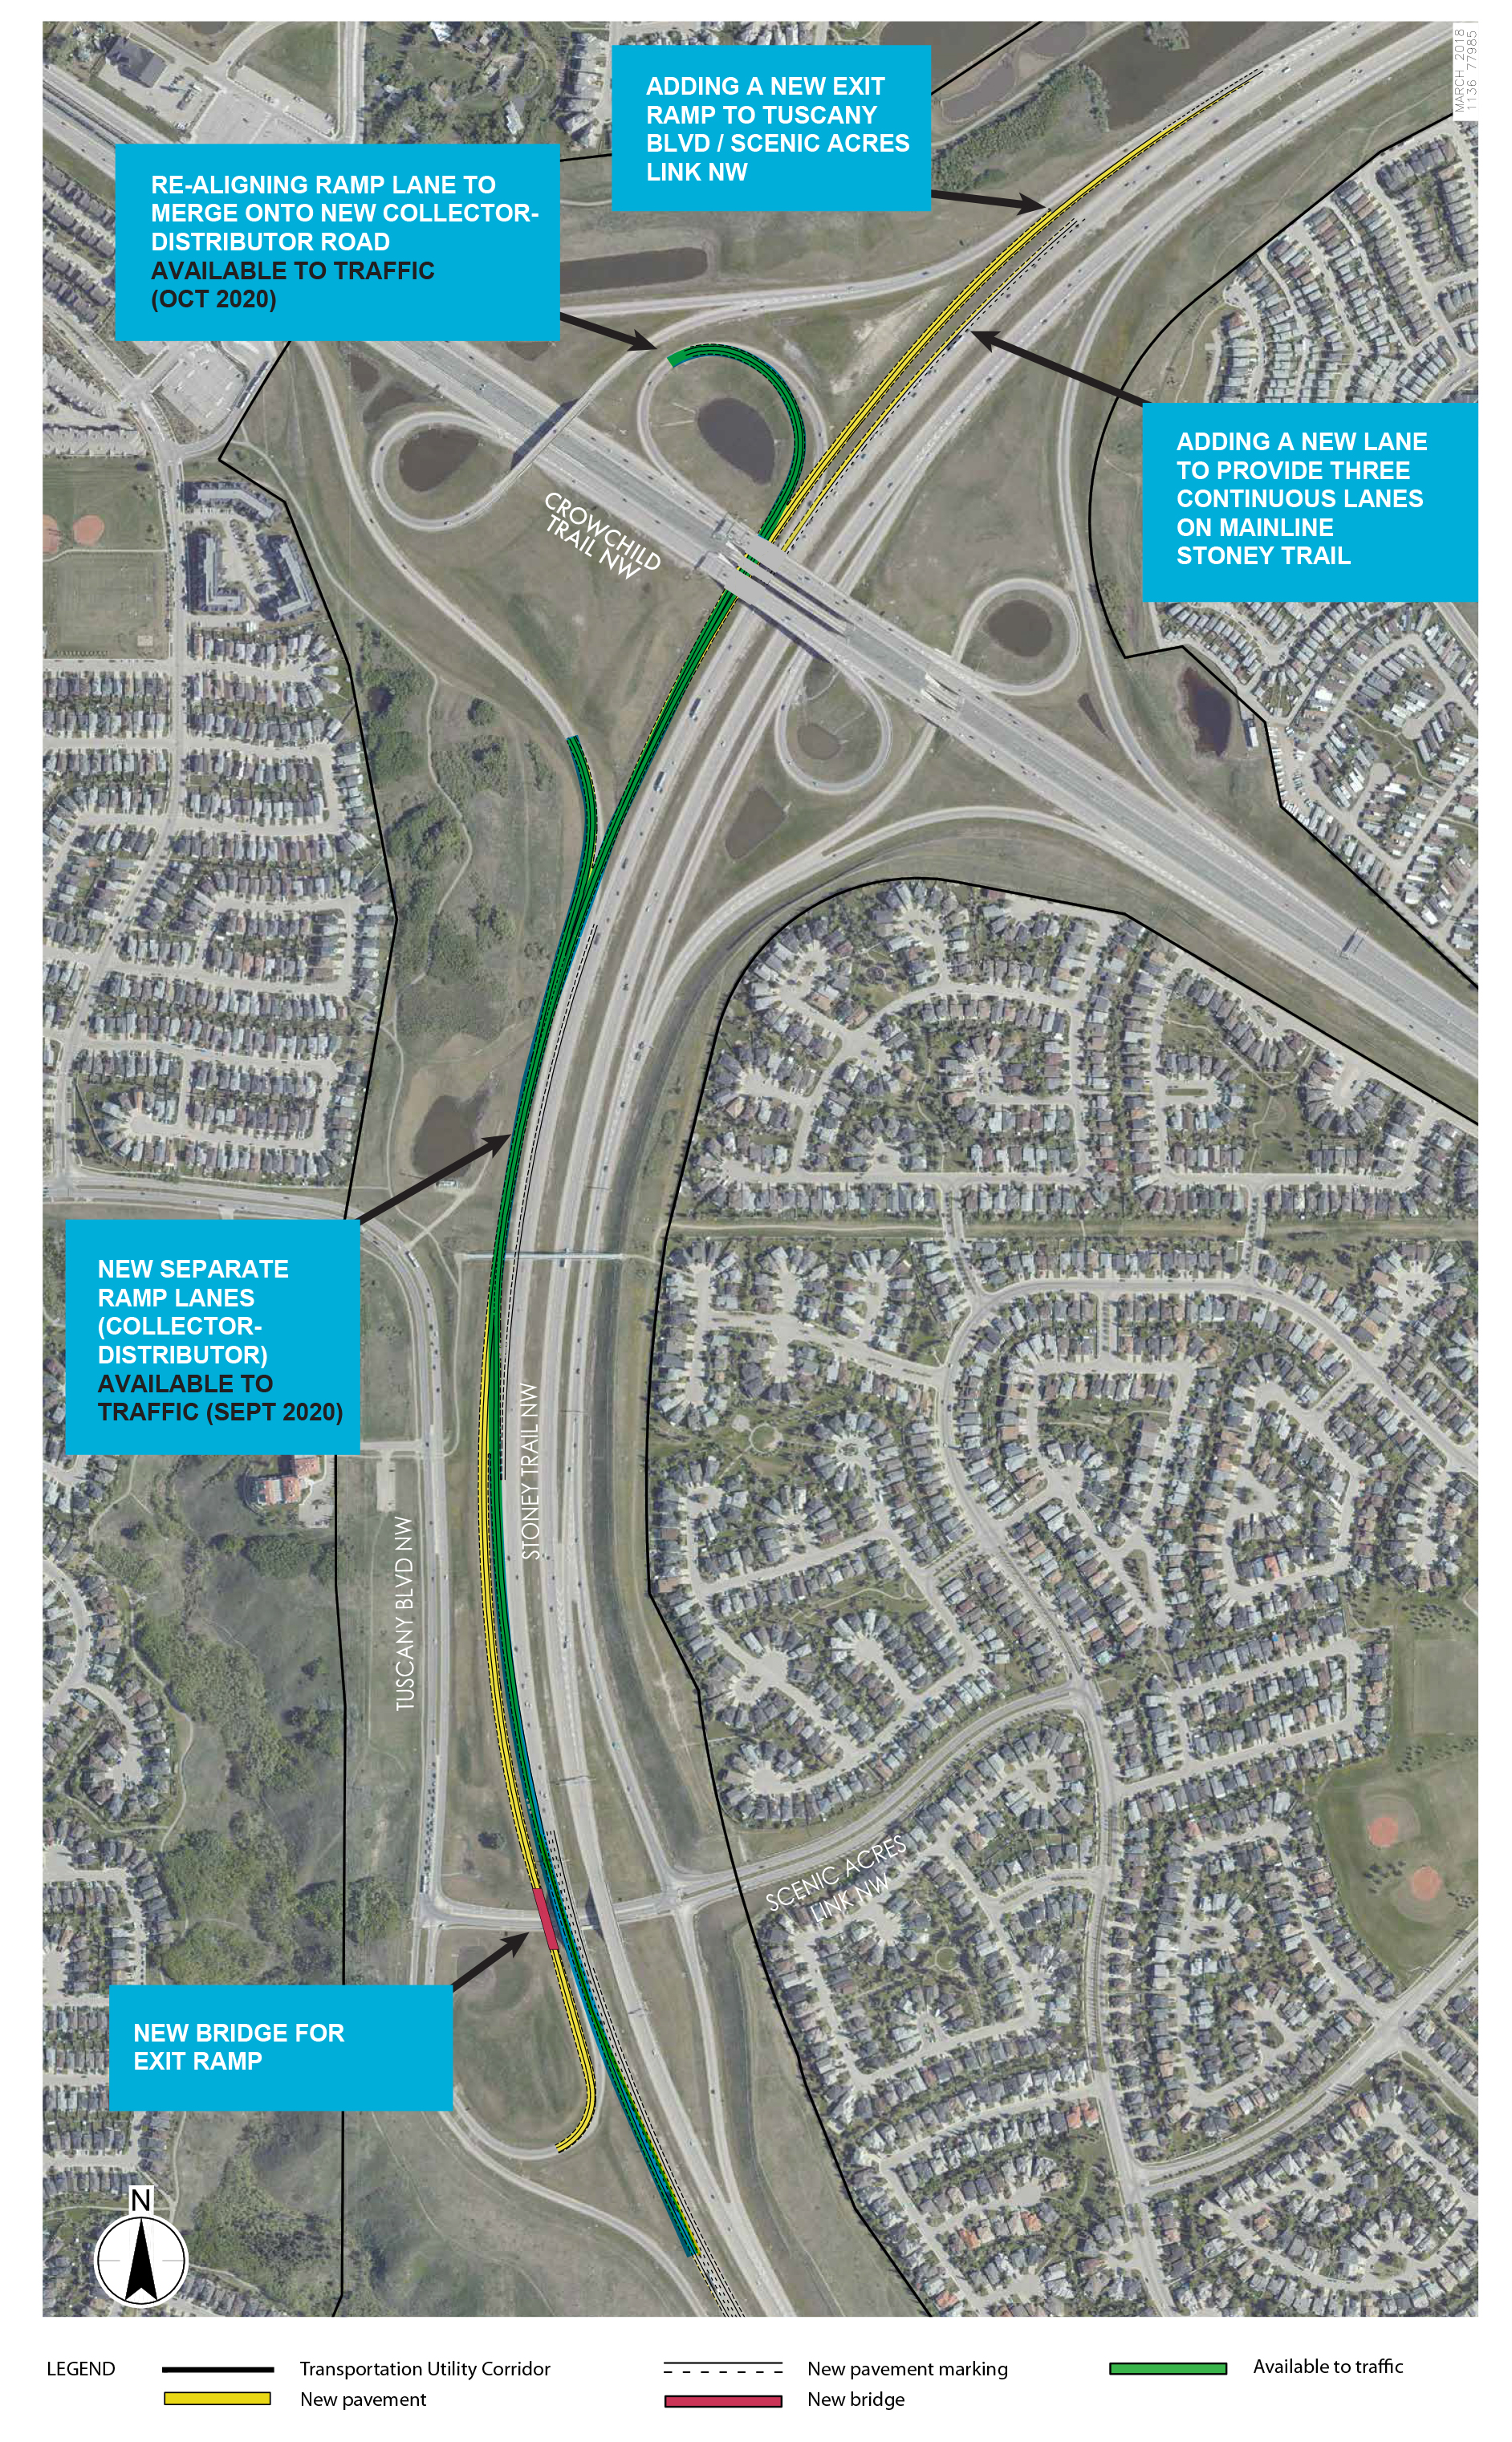 Stoney Trail widening plans